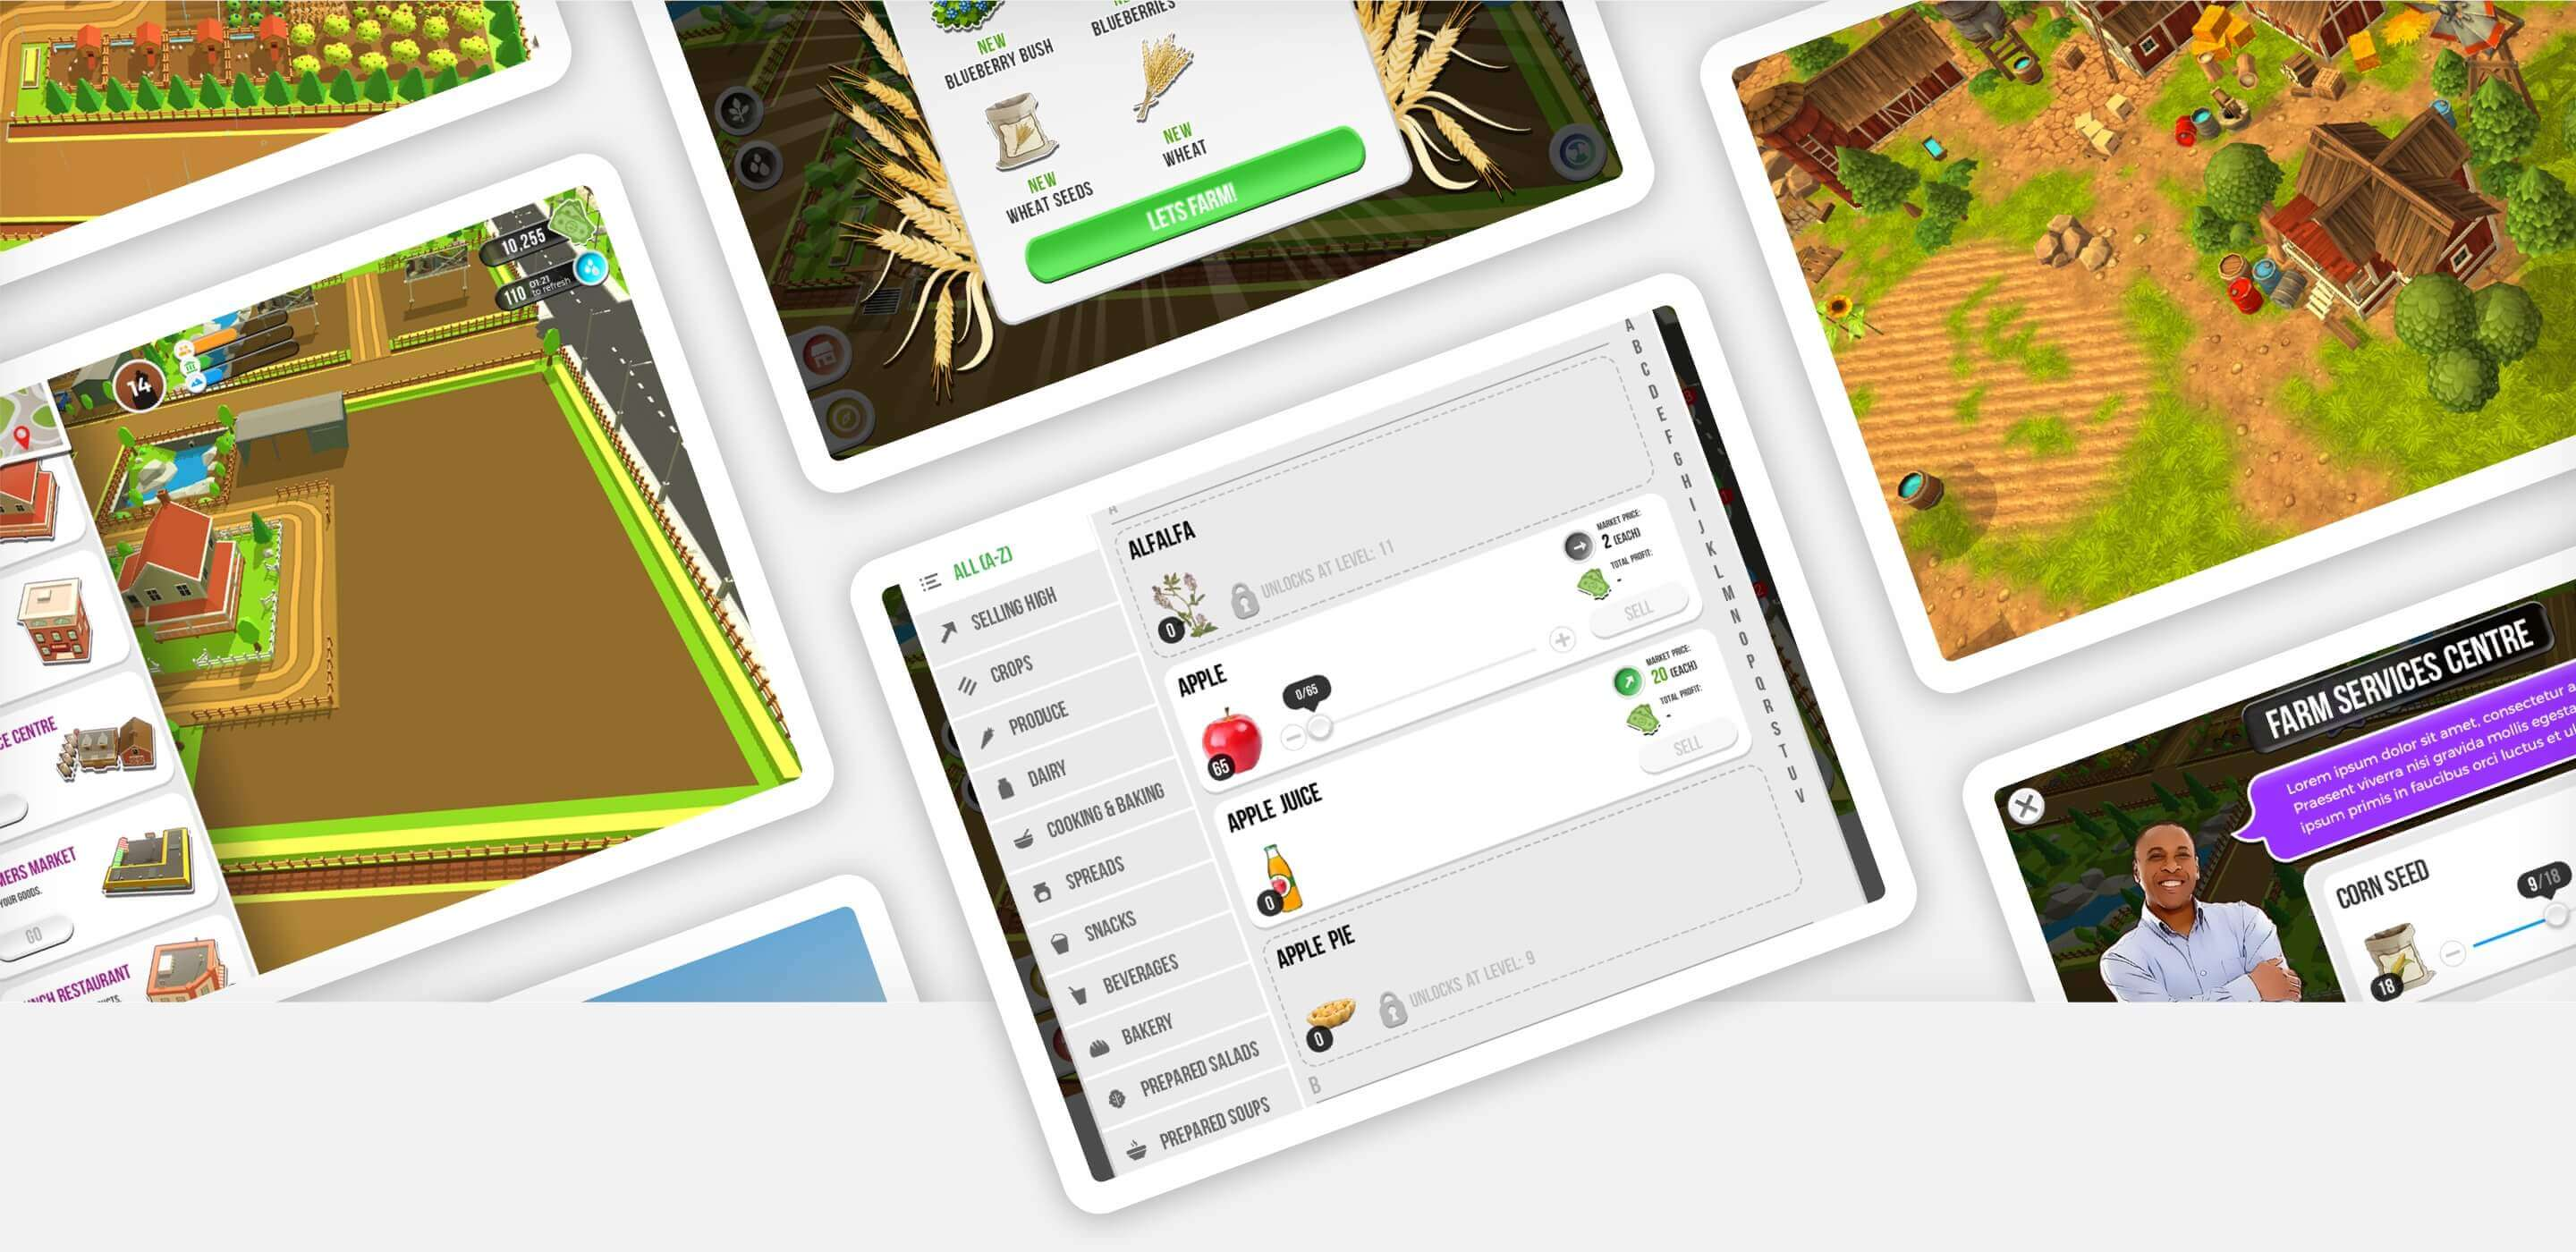 Farmers 2050 app on iPads